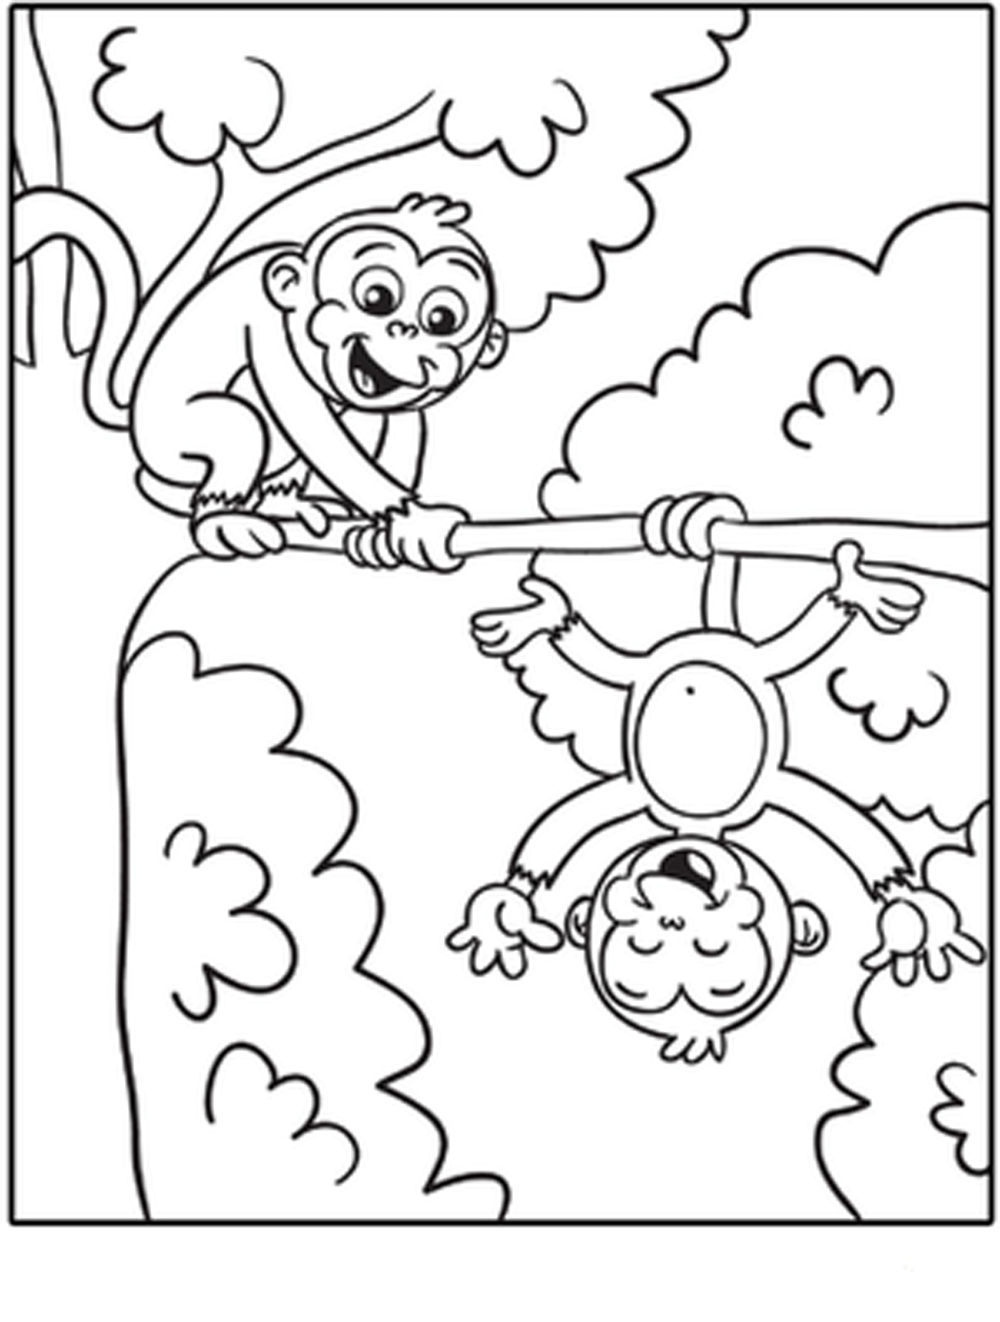 Monkey Coloring Pages Online